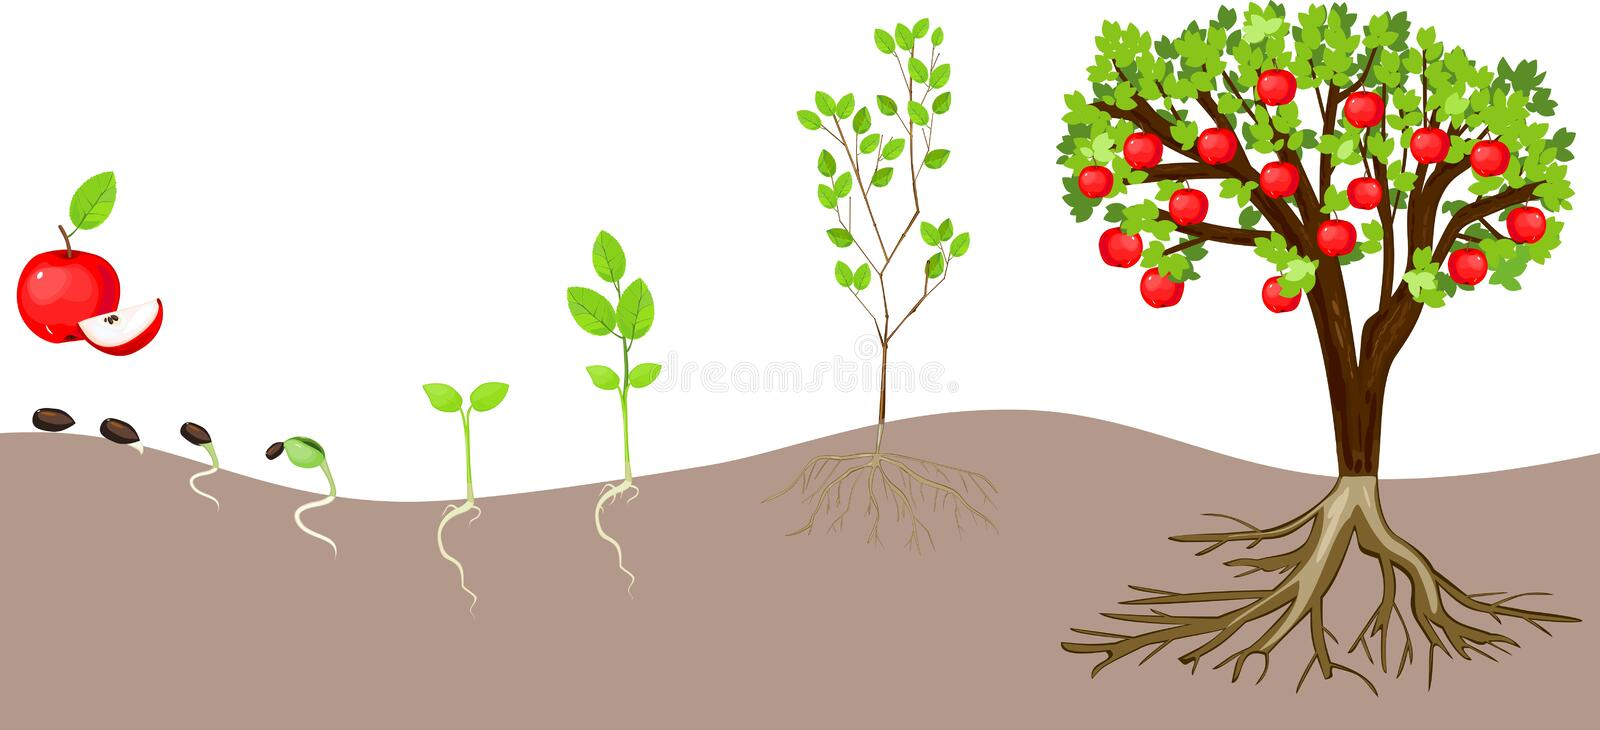 Life cycle of apple tree. On white background royalty free illustration